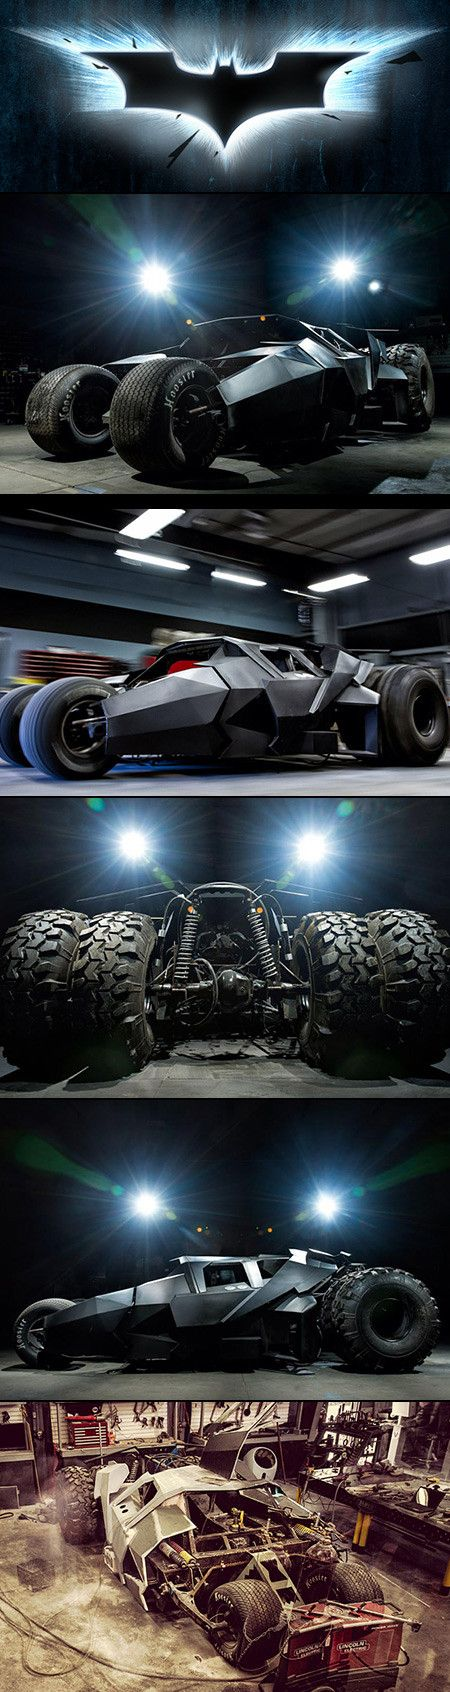 Here is an incredible street legal Batman Tumbler by Parker Brother Concepts.